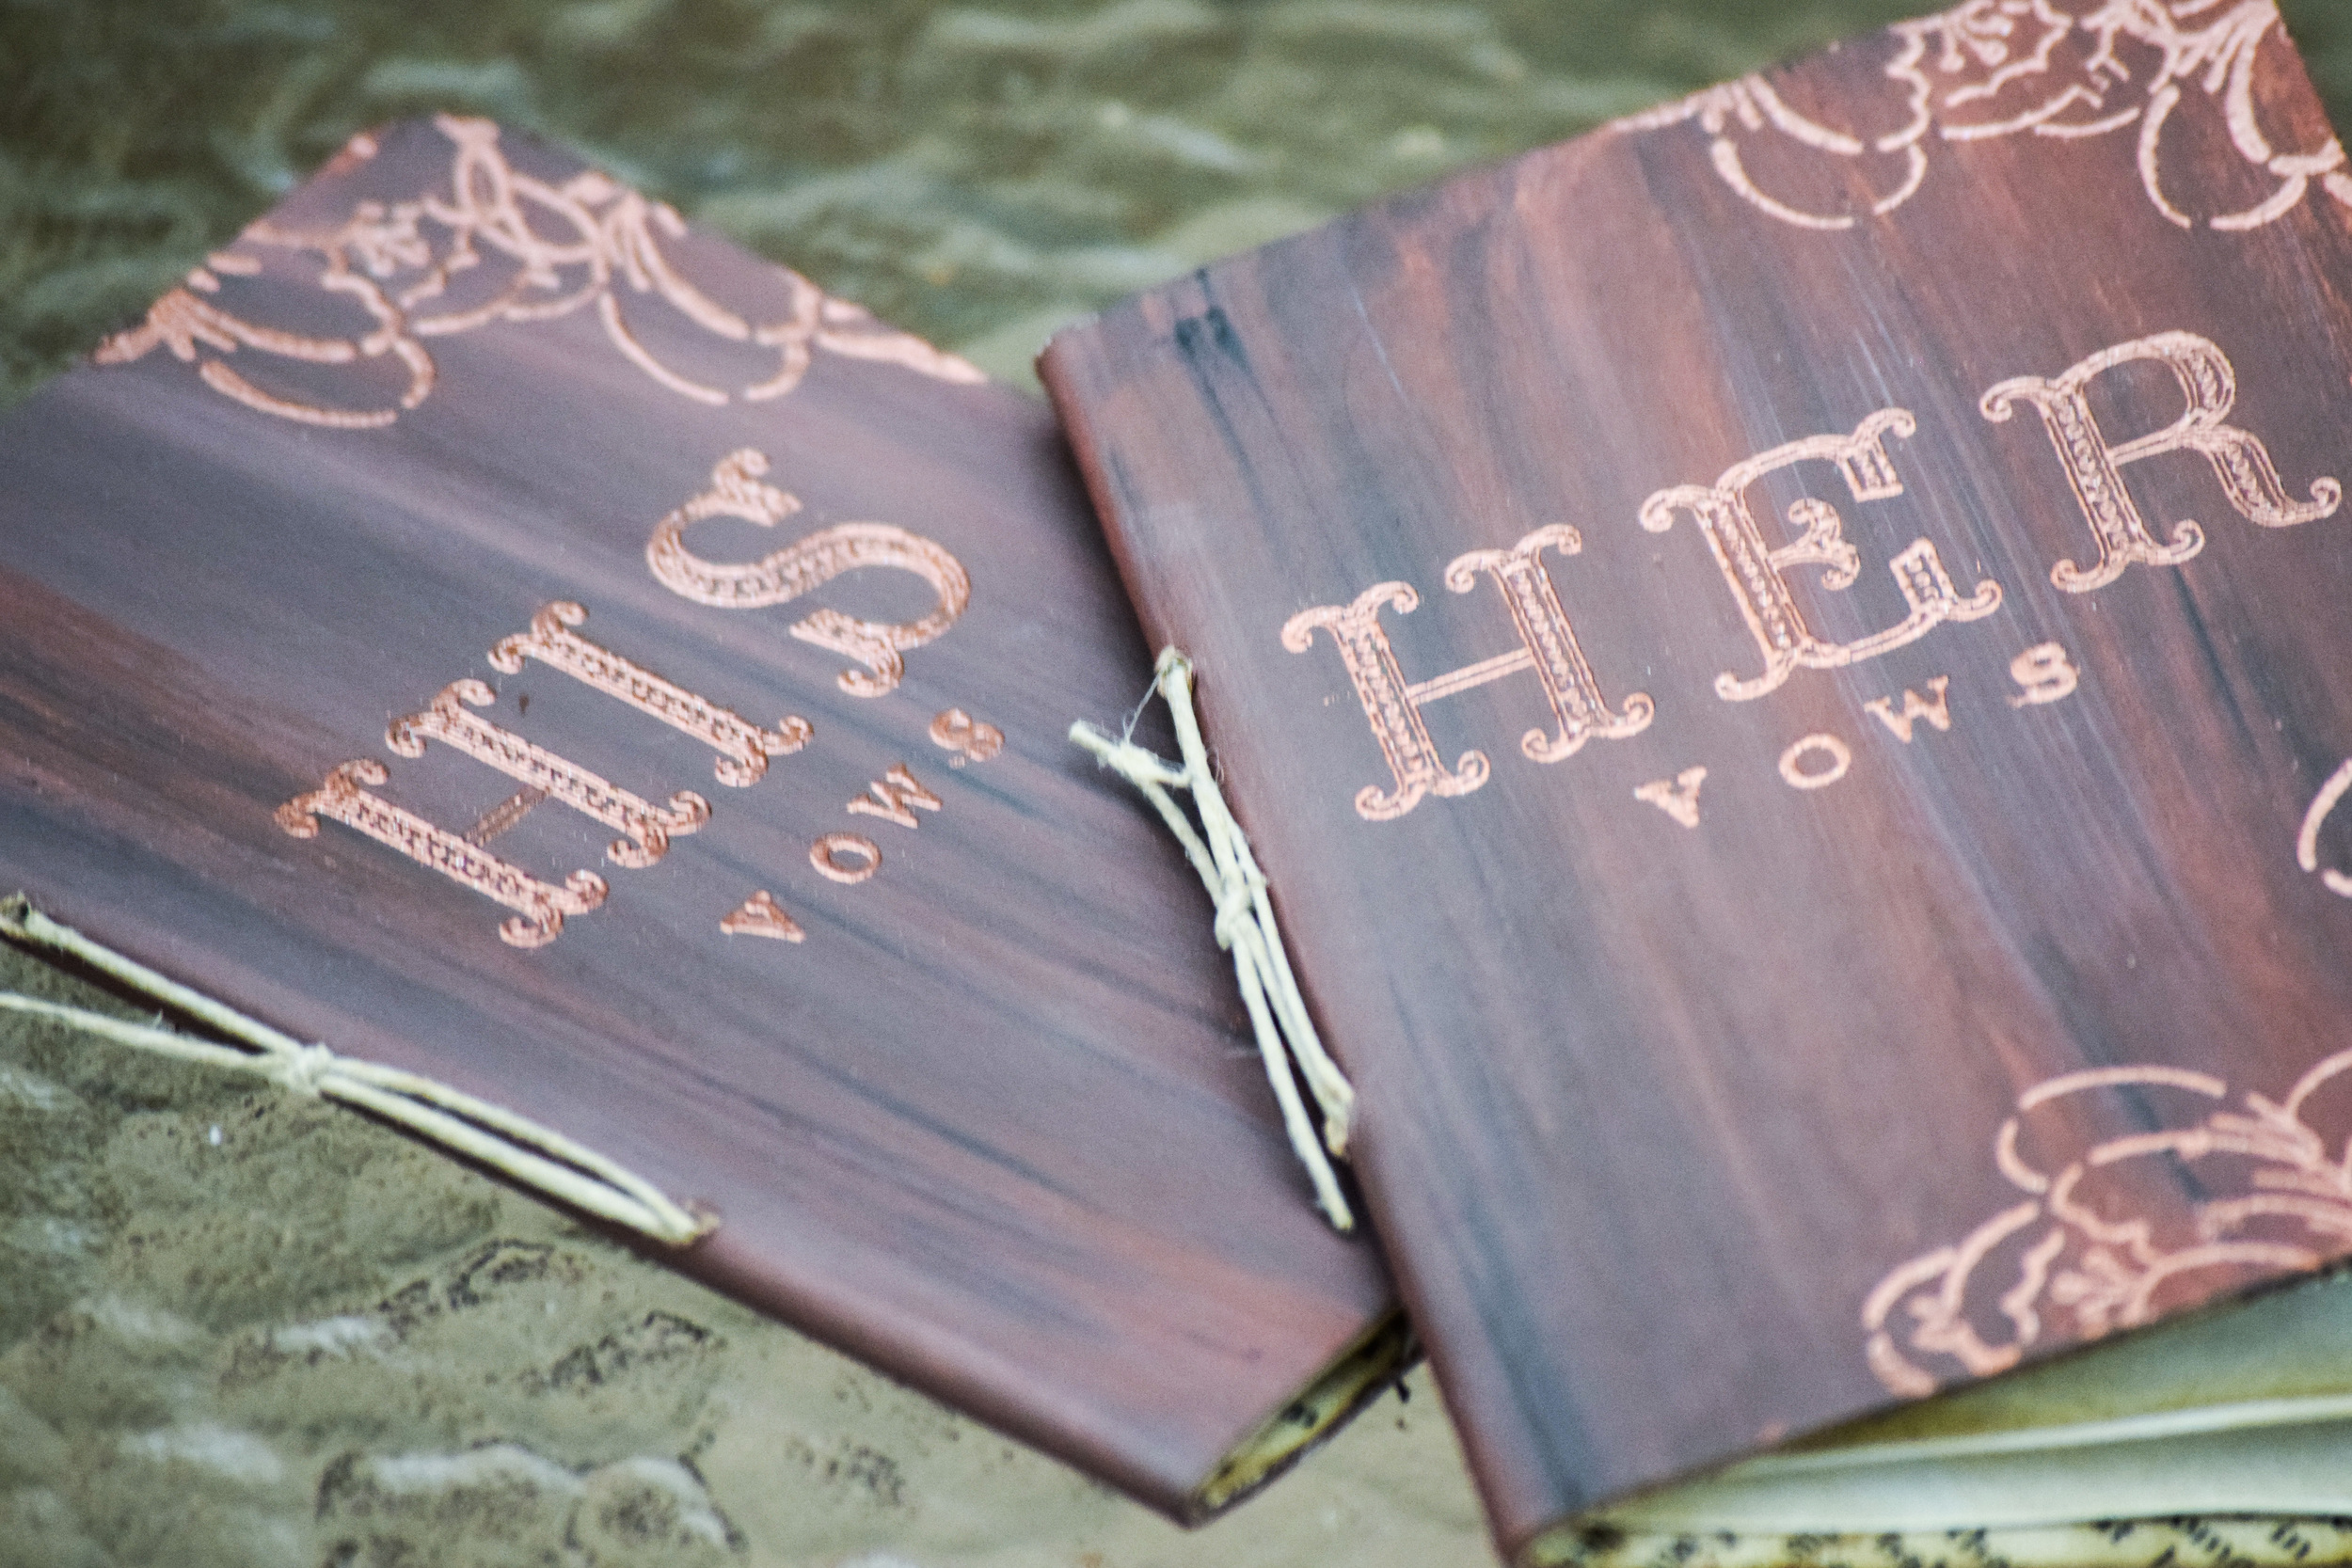 His and Her Rustic Wedding Vow Books by Scrappy Seahorse